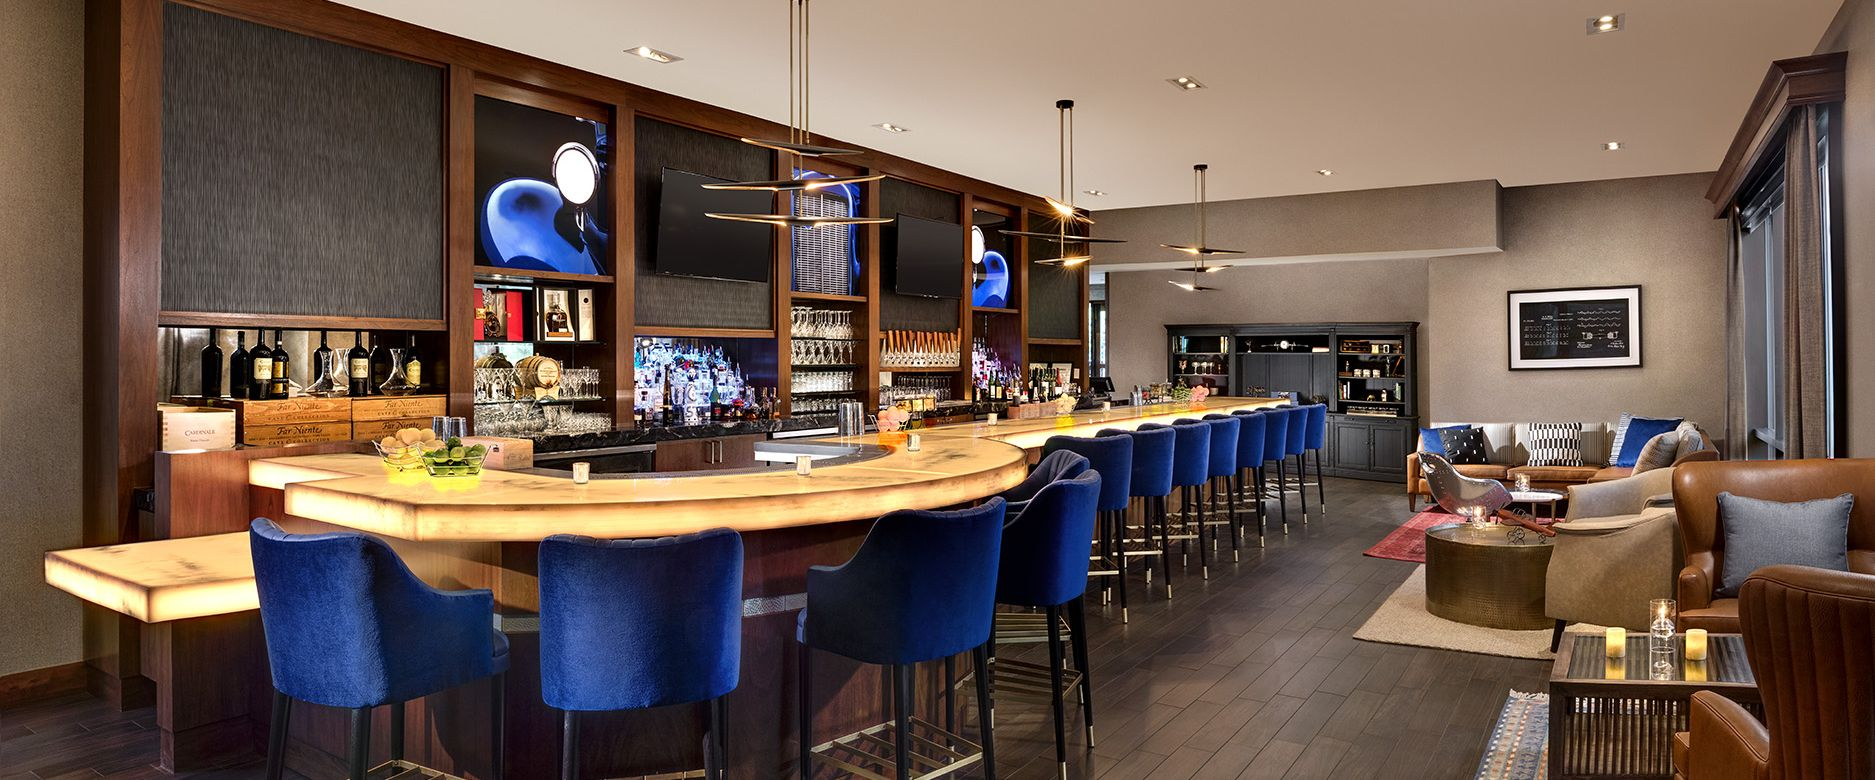 The bar at Robard's boutique luxury steakhouse.